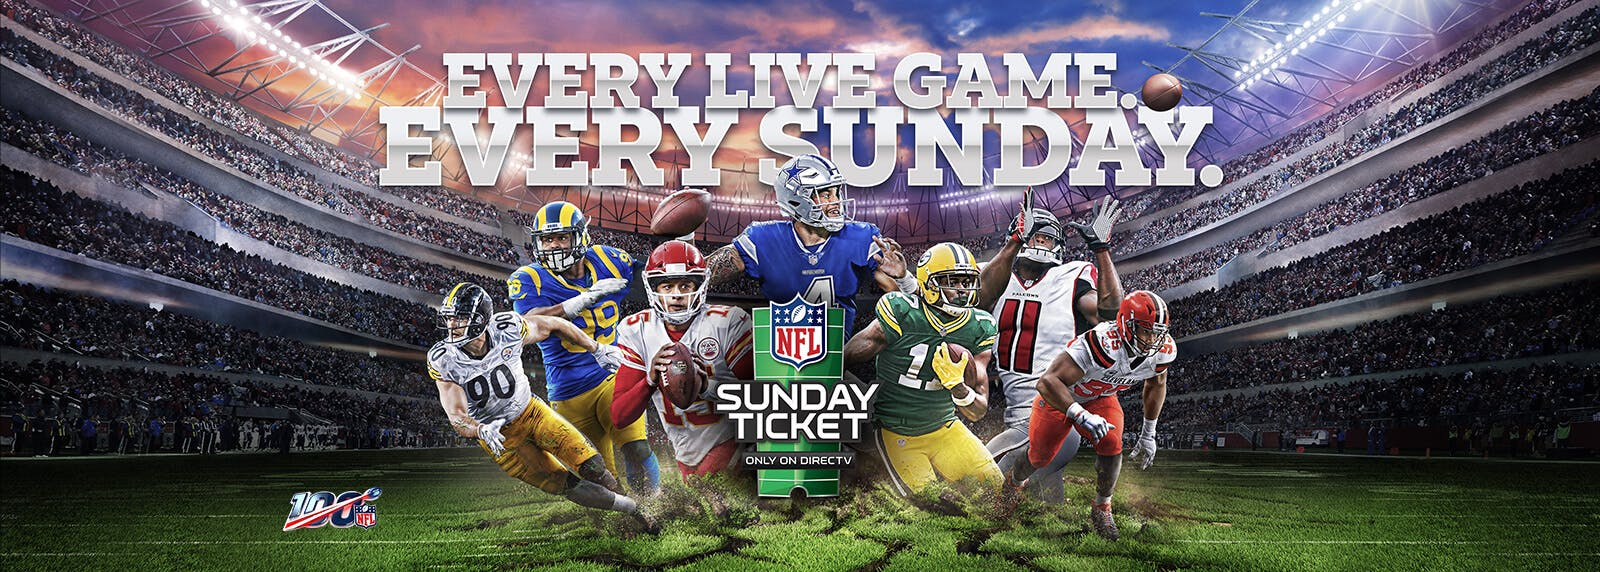 49ers panthers nfl sunday ticket streaming nfl nfc